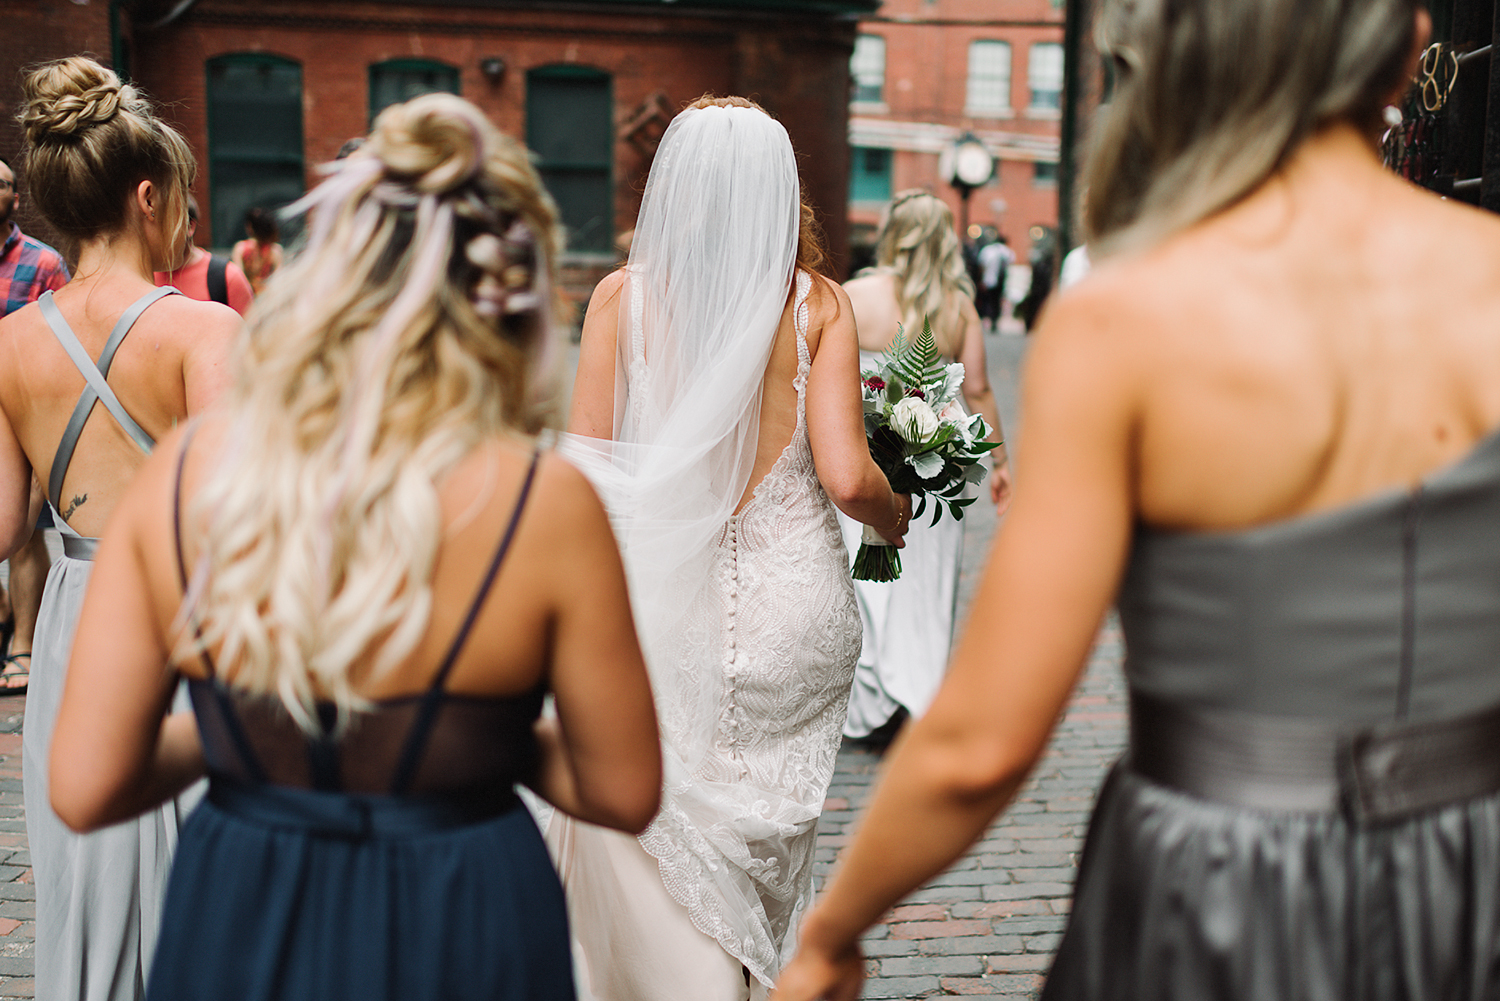 torontos-best-documentary-wedding-photographers-ryanne-hollies-photography-fine-art-photojournalism-artistic-moody-toronto-airship37-distillery-district-groom-and-bride-portraits-candid-bridal-party-walking-together.jpg